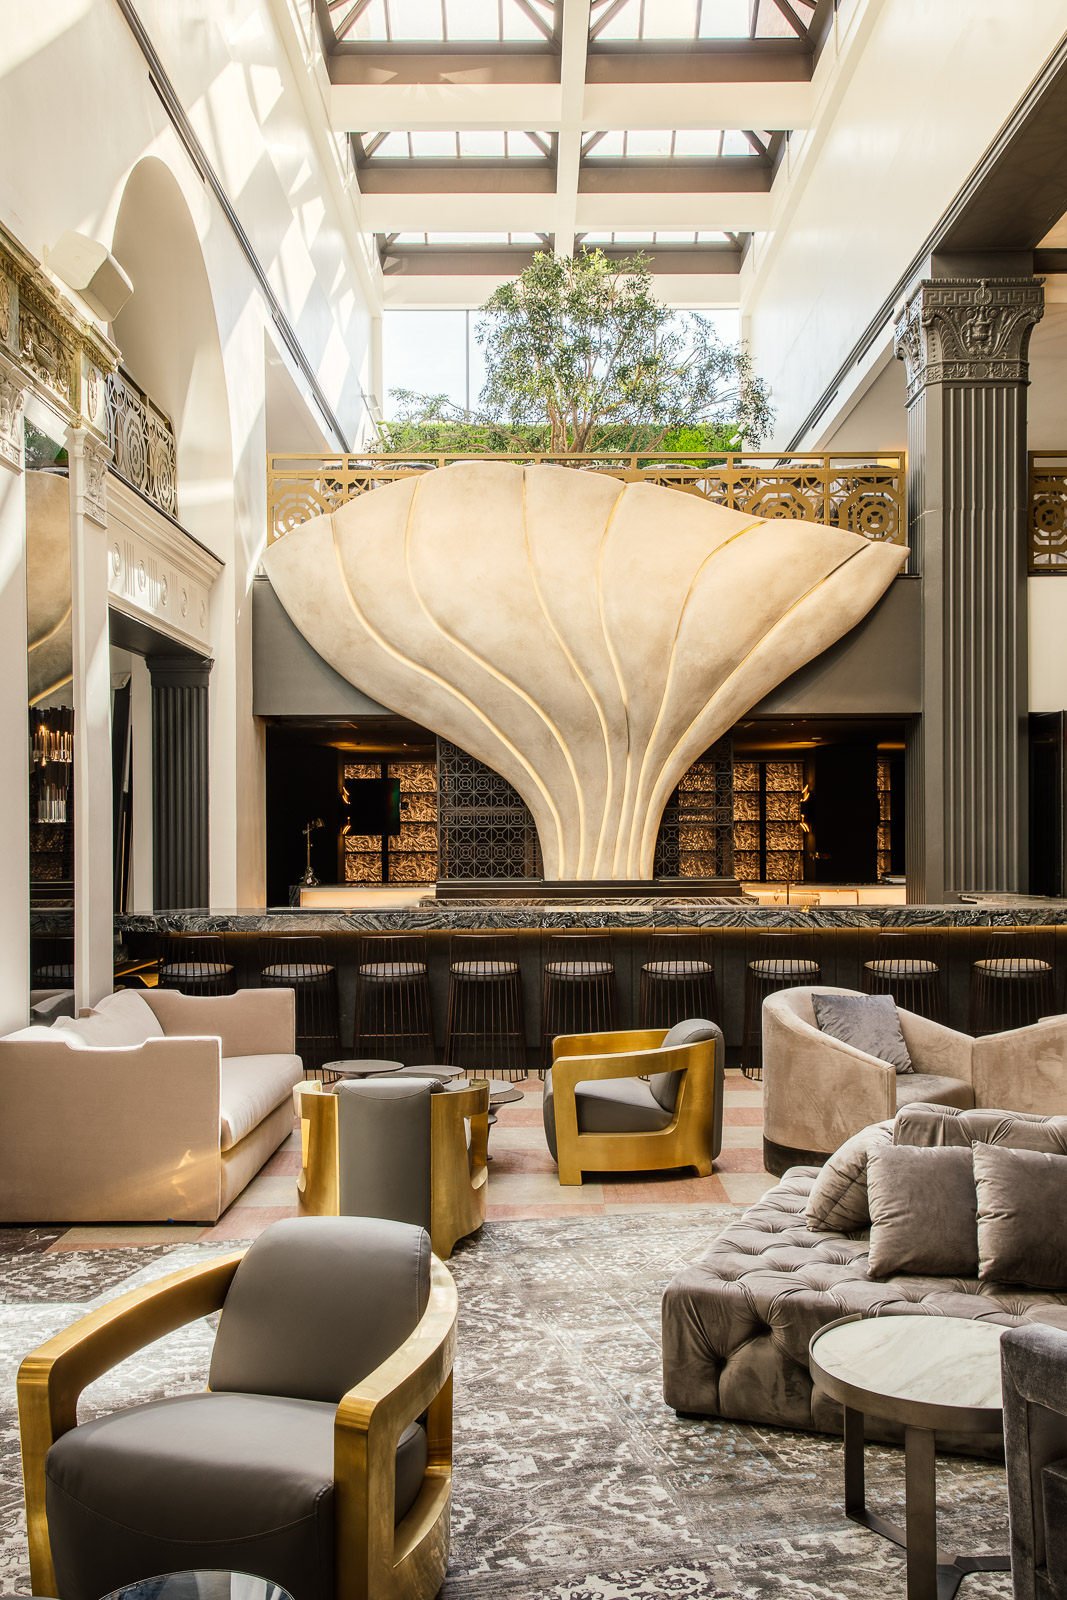 Mayfair Hotel + Architectural Digest -